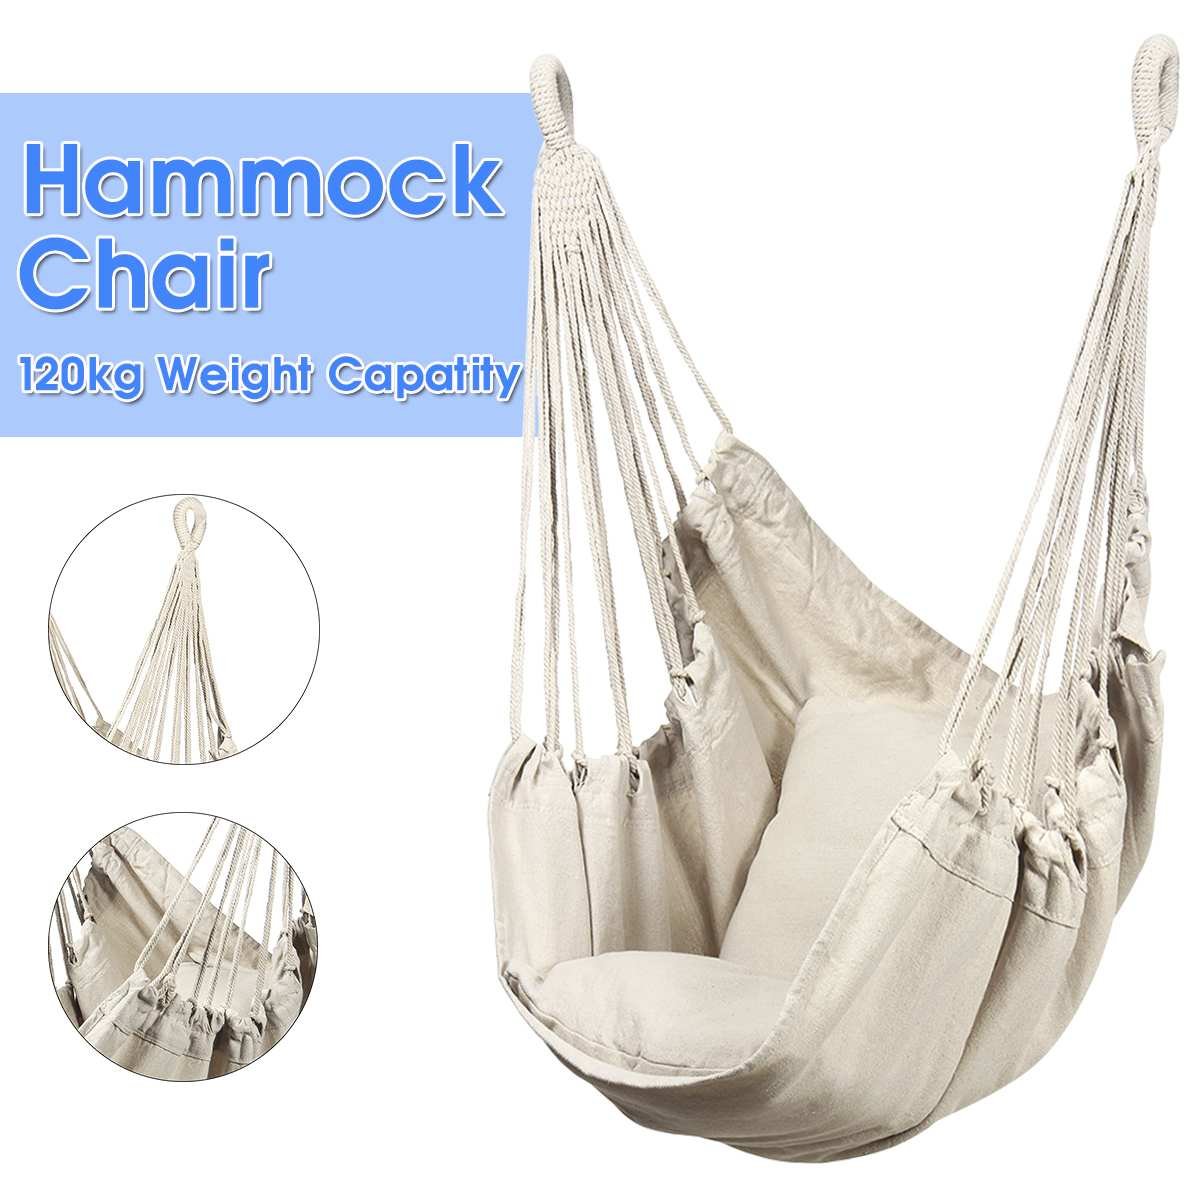 Instyle Swing Seat Hammock Chair Swing Chair Patio Swing Outdoor Garden Hanging Chair Travel Camping Hammock Silla Colgante